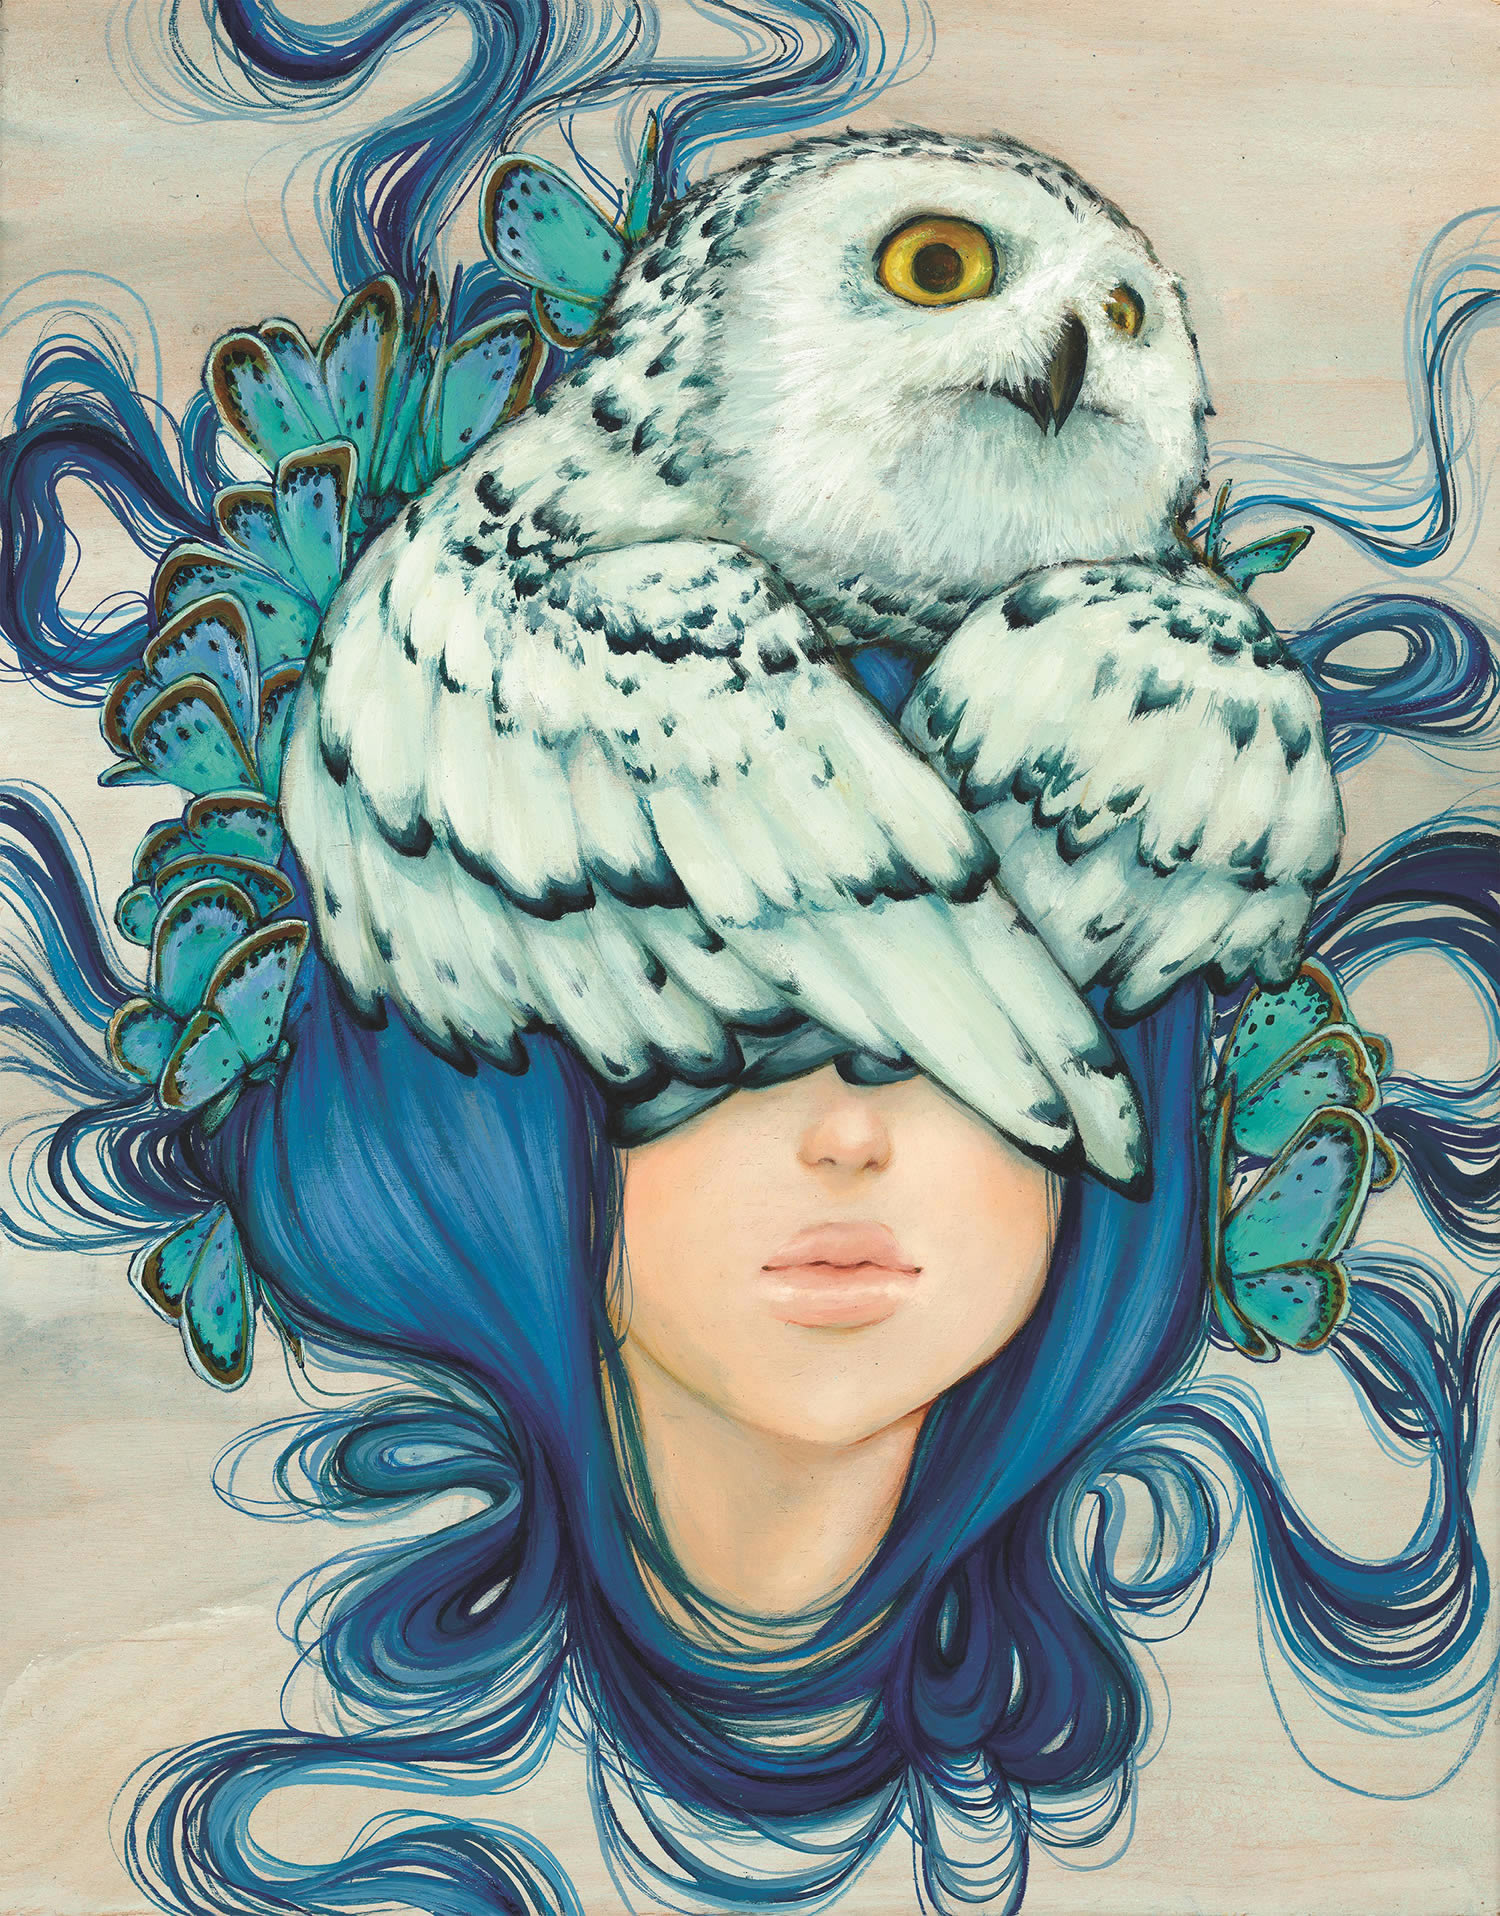 owl face girl, pop painting by Camilla d'Errico